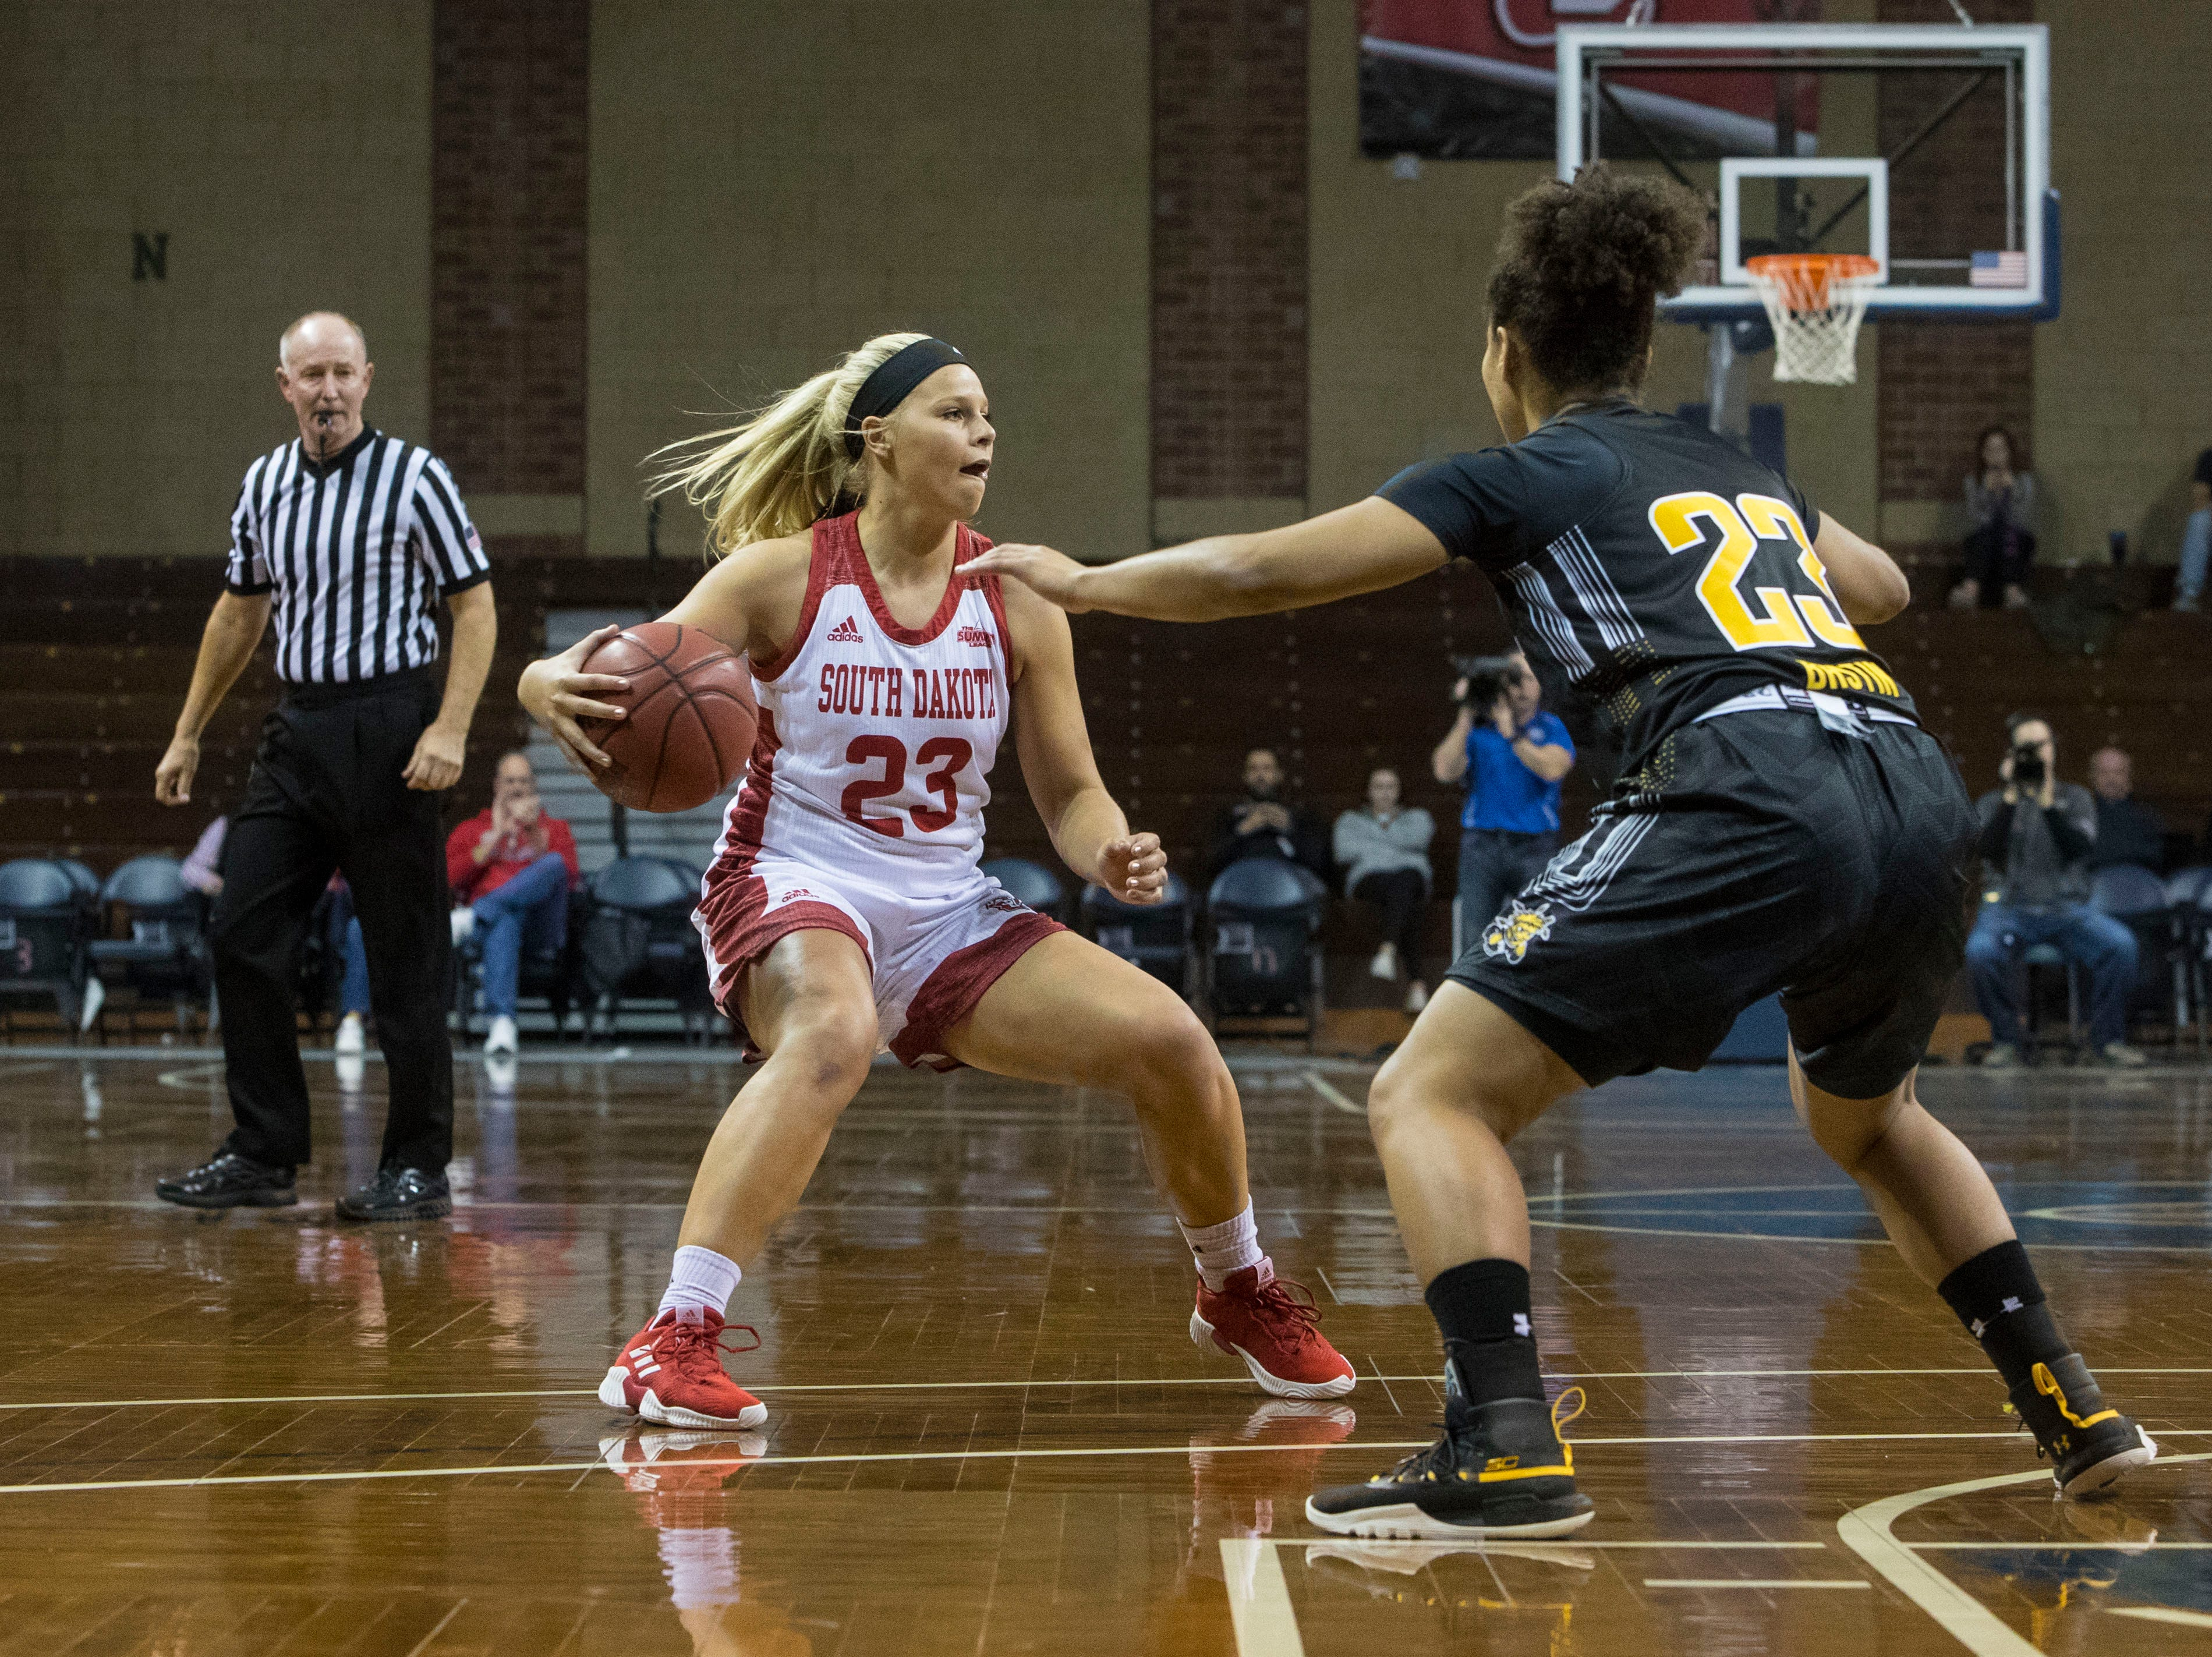 USD's Madison McKeever (23) looks to pass the ball during a game against Wichita State at the Sanford Pentagon in Sioux Falls, S.D., Wednesday, Nov. 21, 2018.